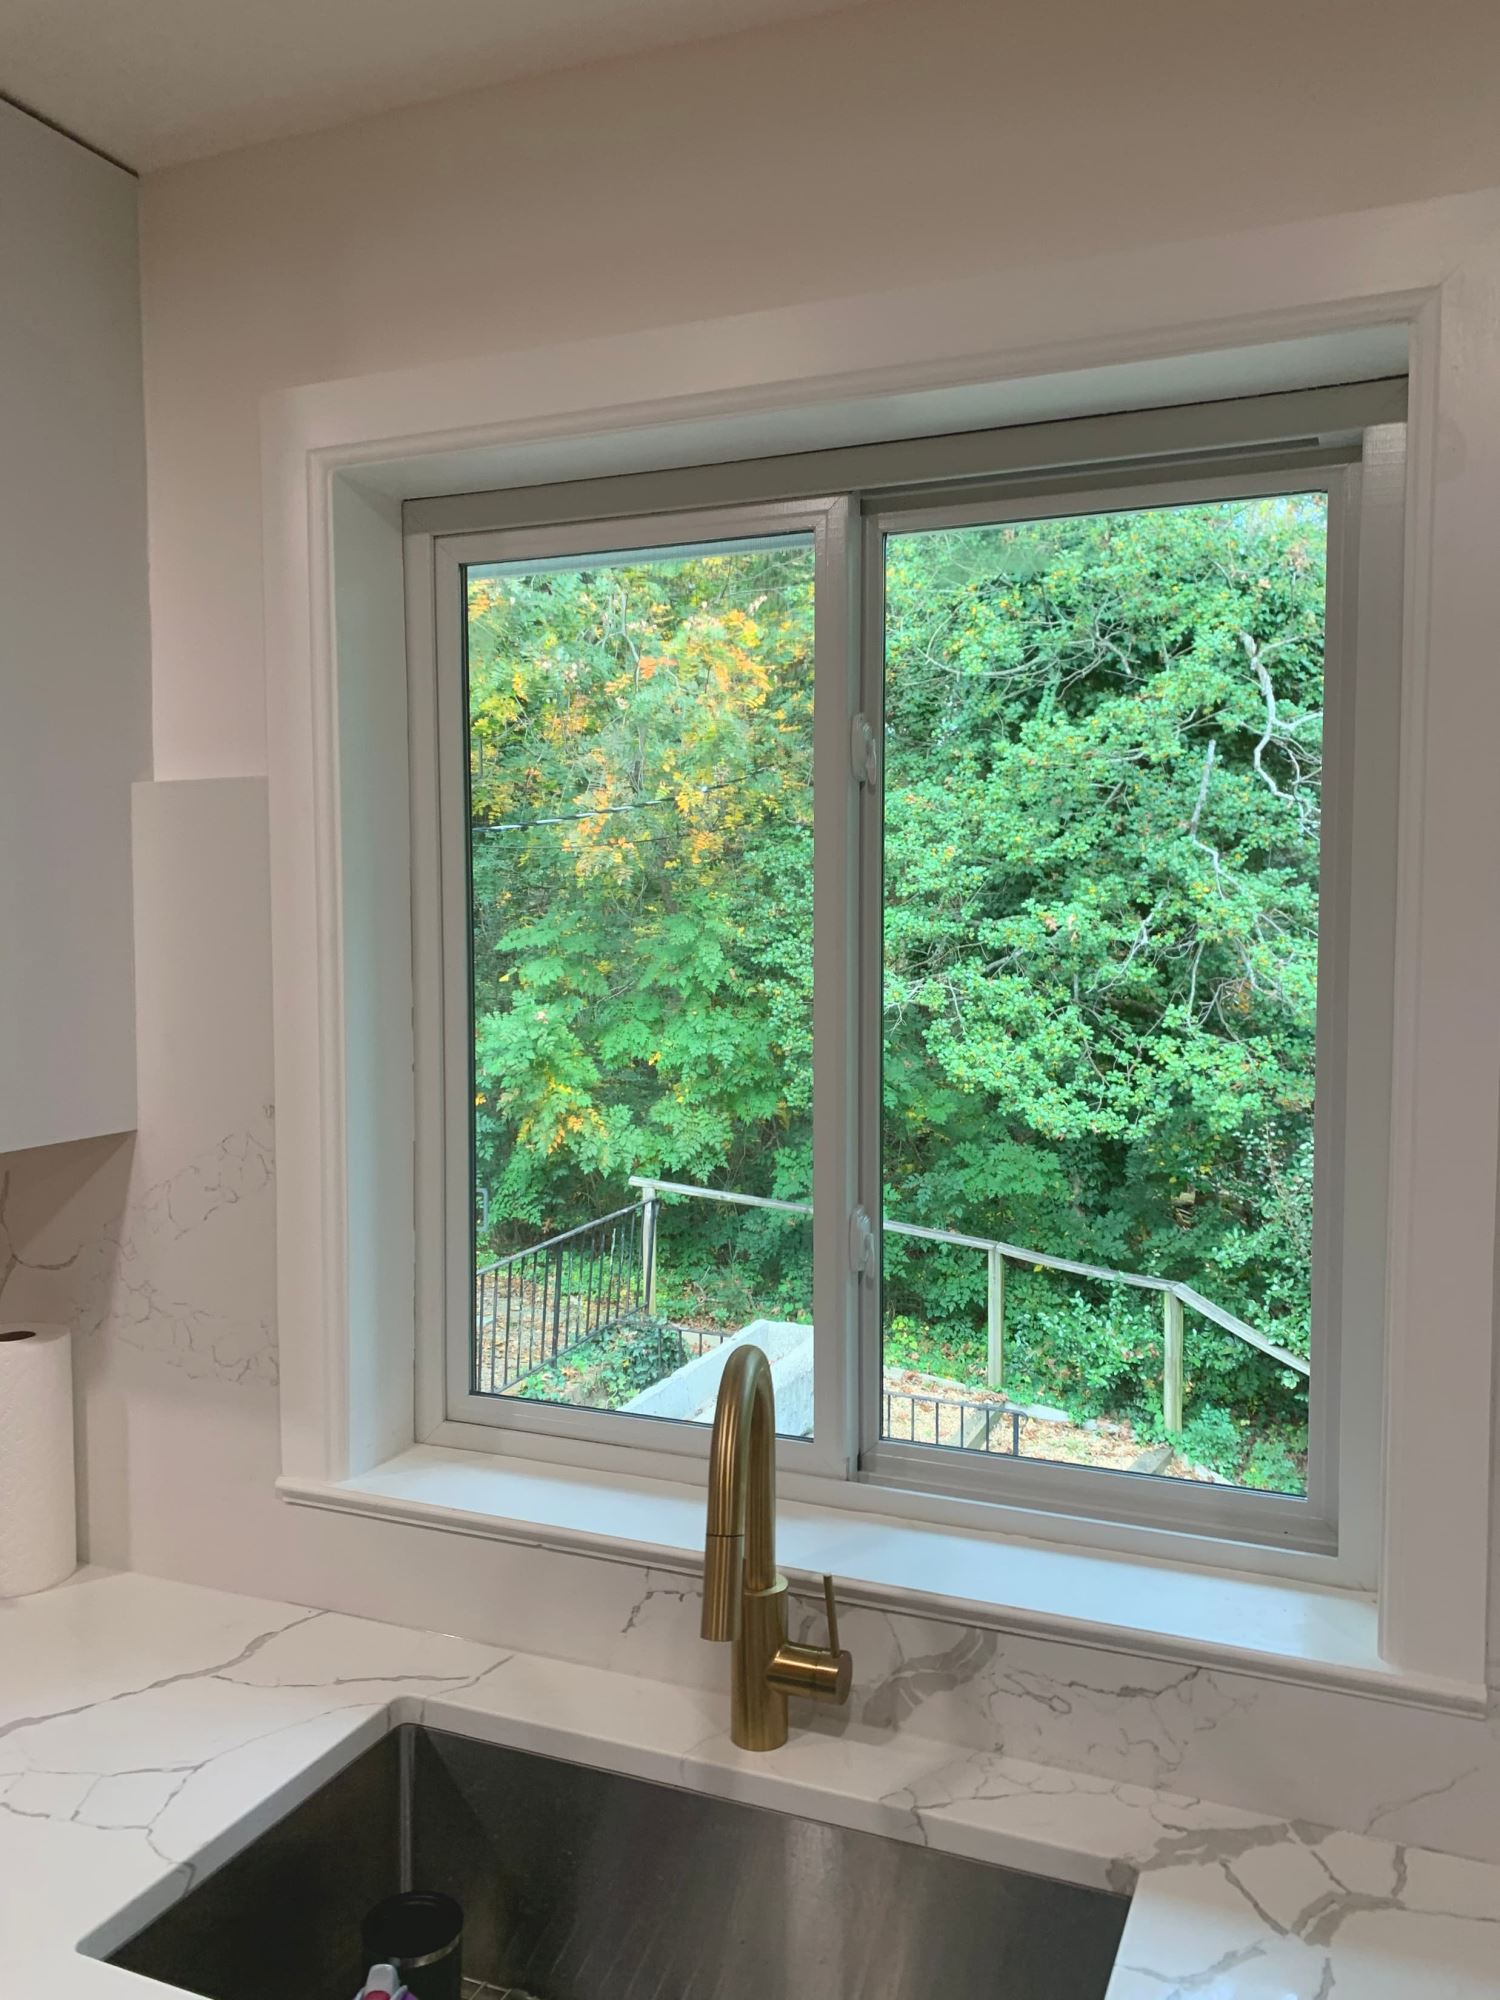 Impervia Sliding Windows Increase Airflow for Charlottesville Home